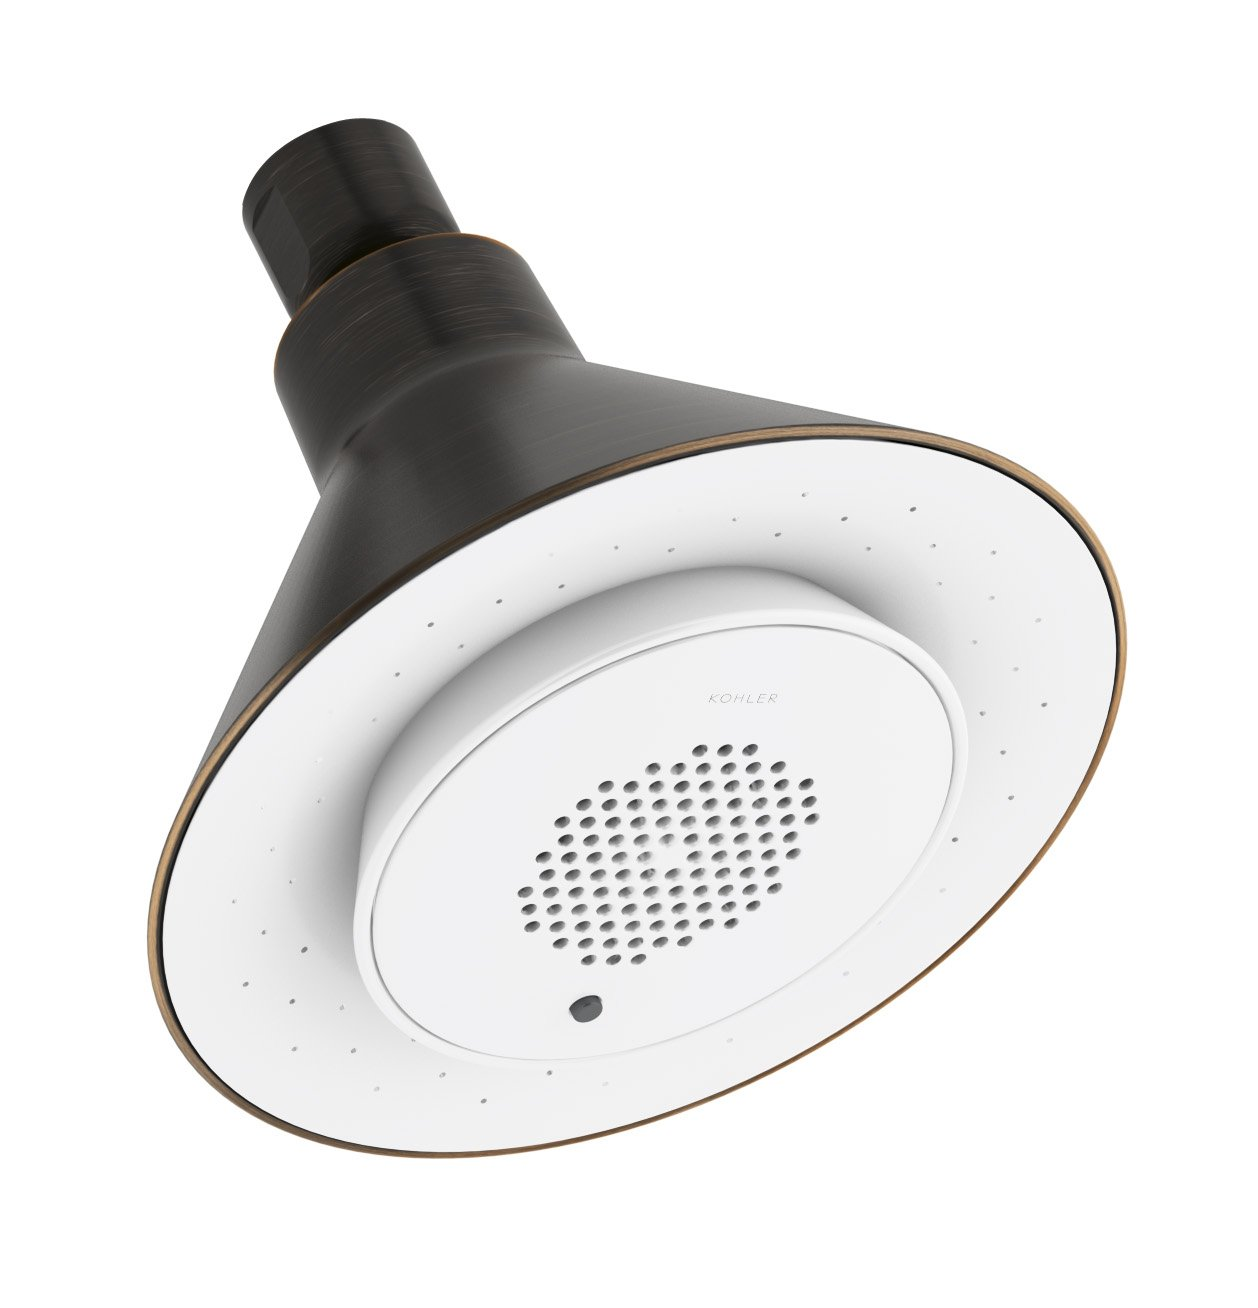 KOHLER K-9245-2BZ 2.5 GPM Moxie Showerhead and Wireless Speaker ...